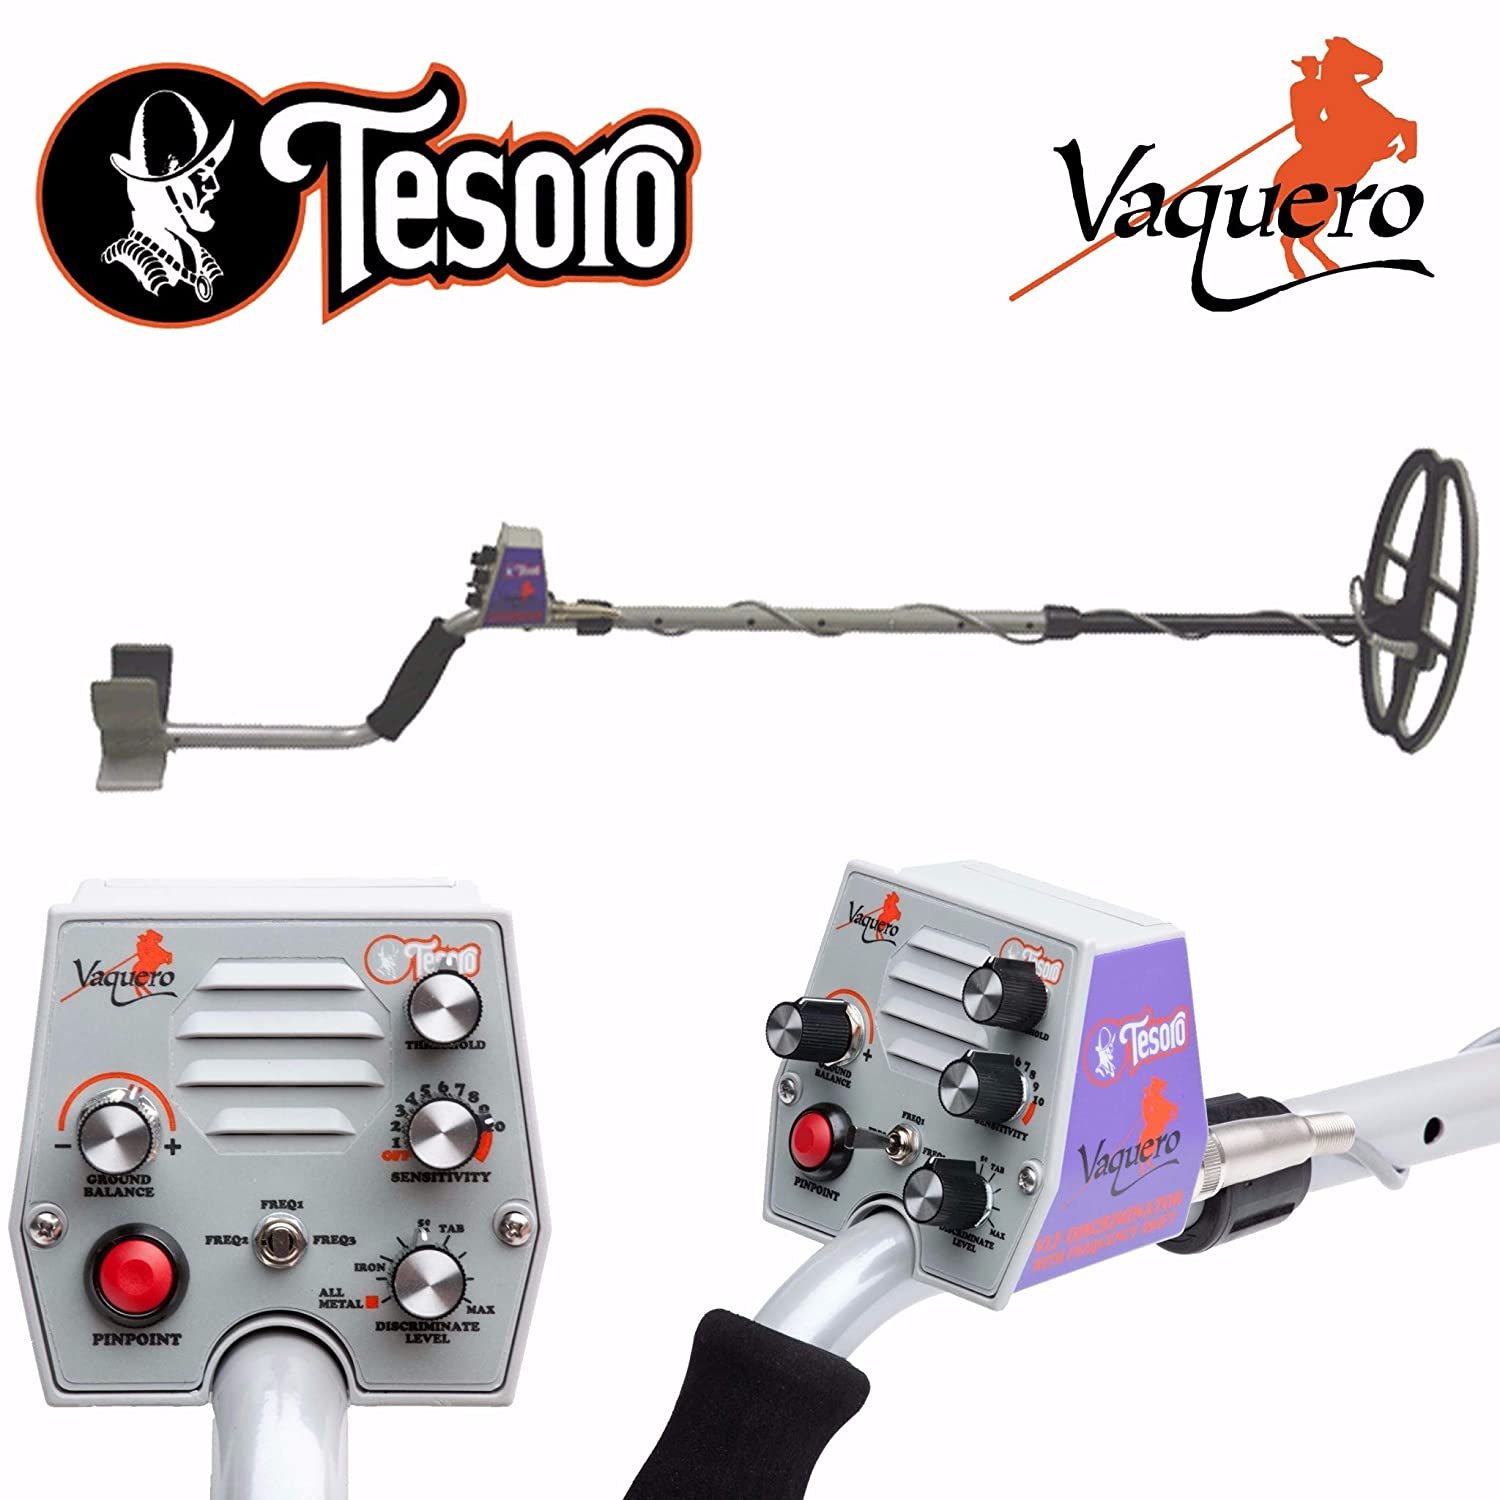 Amazon.com : Tesoro Vaquero Metal Detector with 11